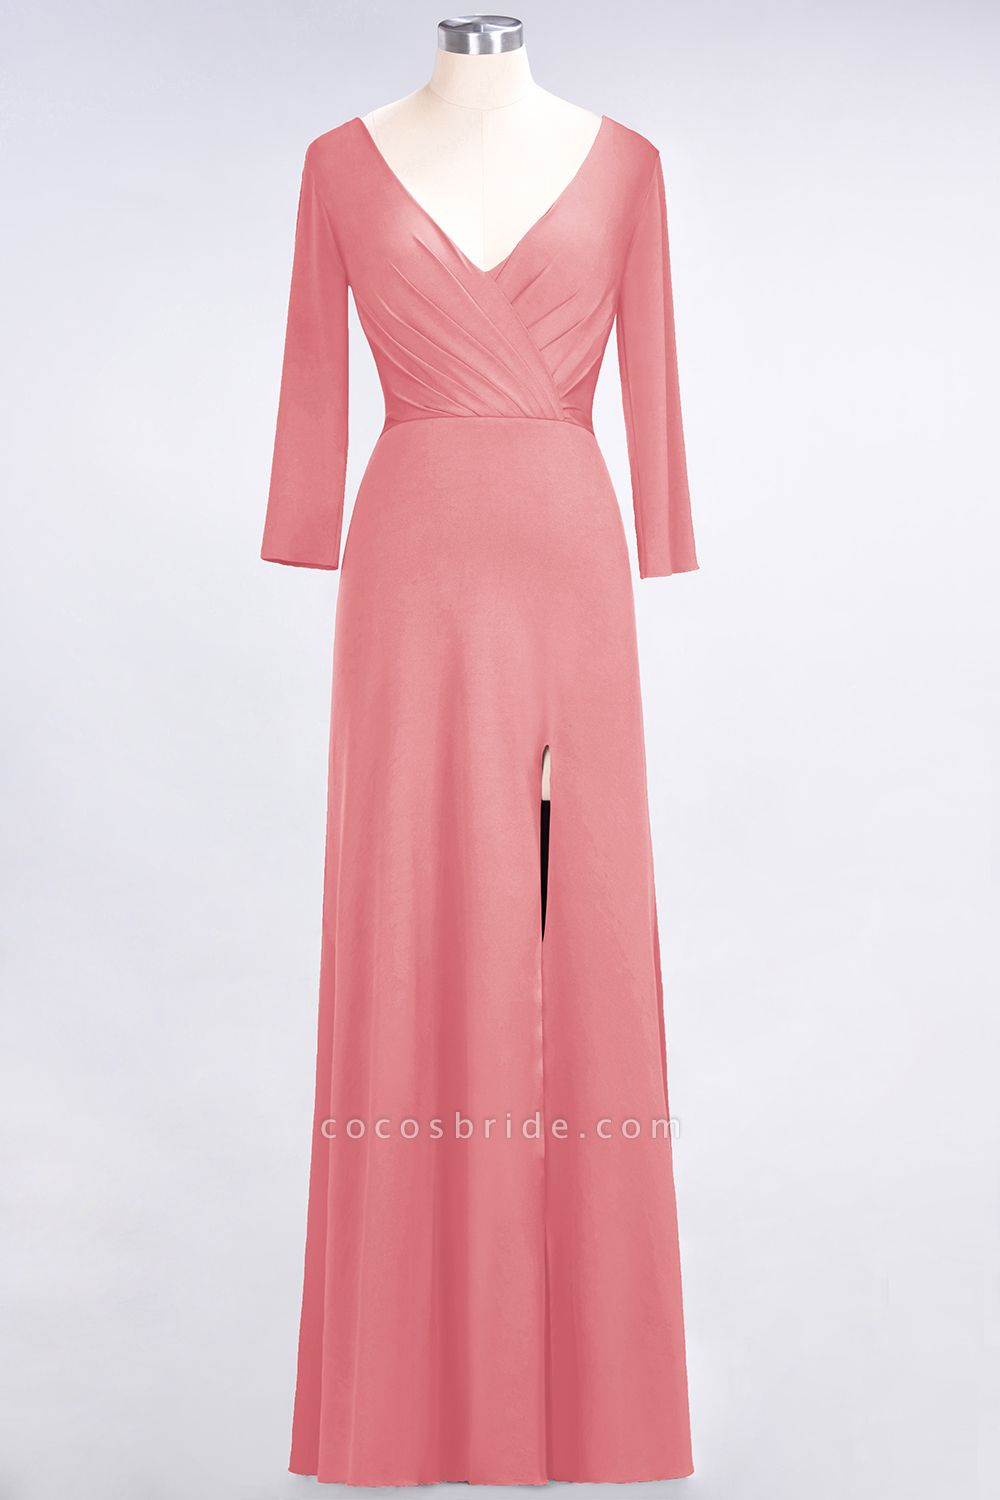 A-Line Spandex V-Neck Long-Sleeves Side-Slit Floor-Length Bridesmaid Dress with Ruffles